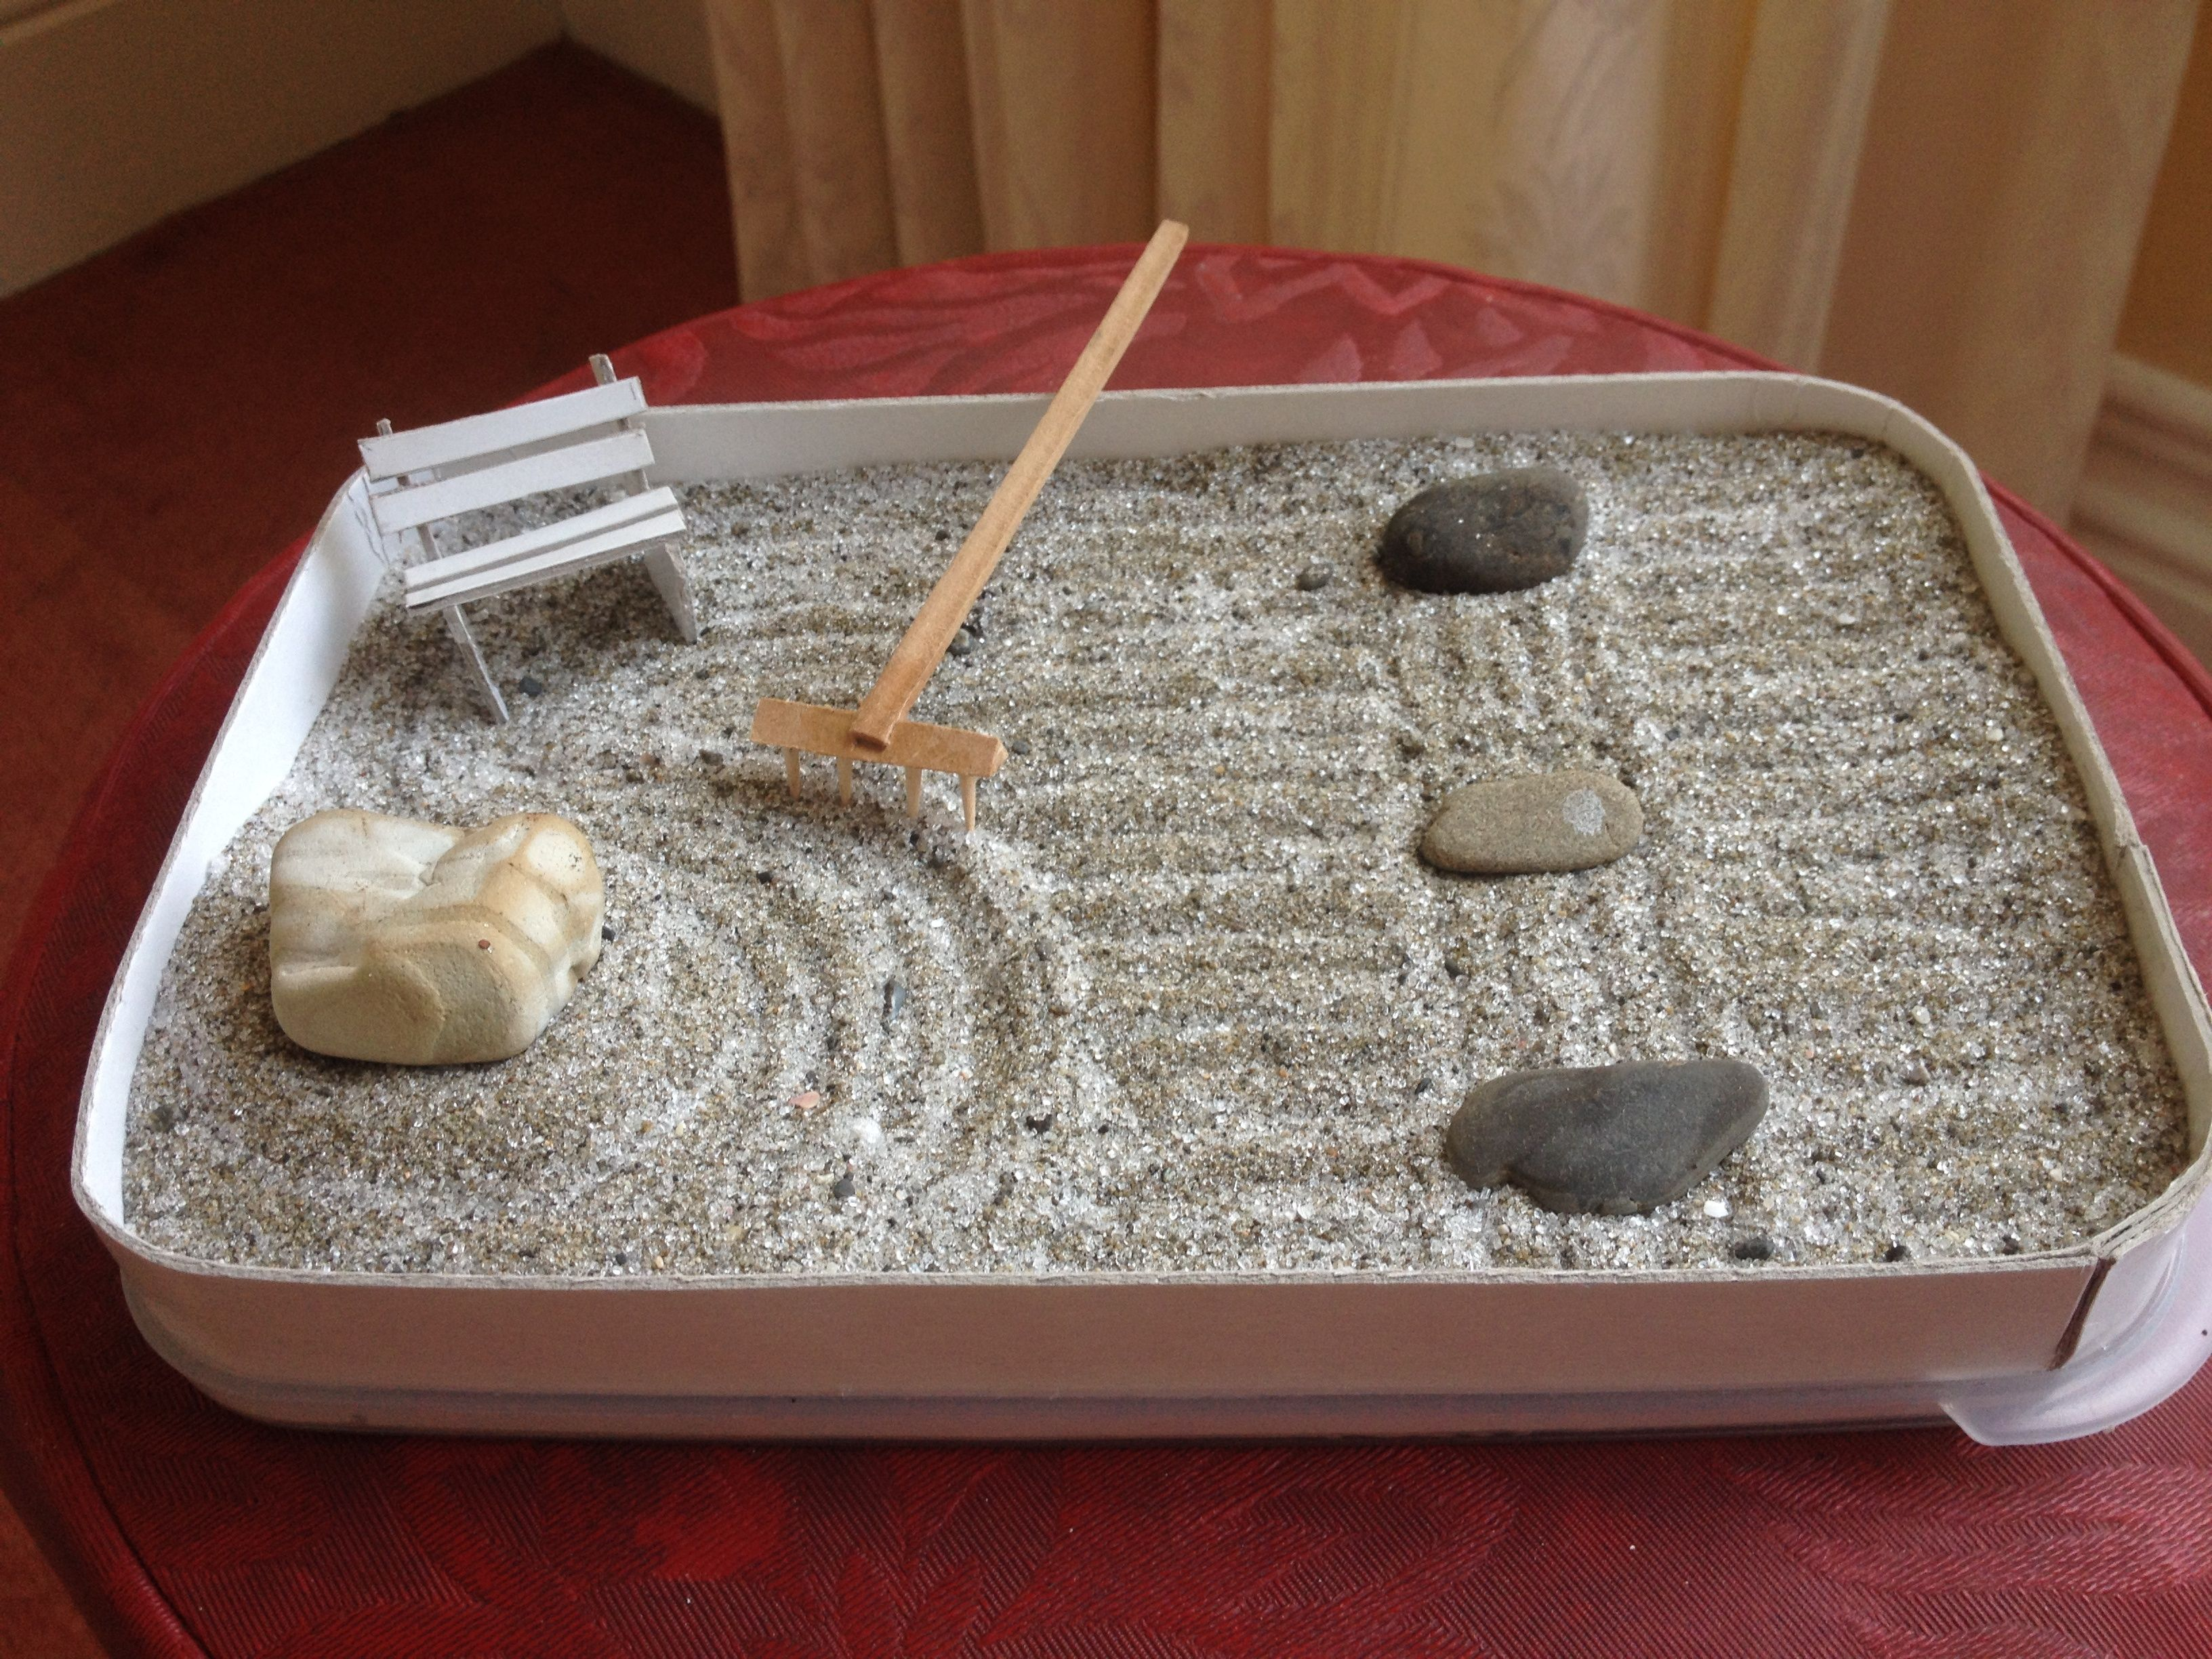 Make Your Own Zen Garden! I Used A Plastic Container Lid As The Base, Put  Thick Cardboard Around The Lip And Filled With Sand From The Beach. The  Stones I ...